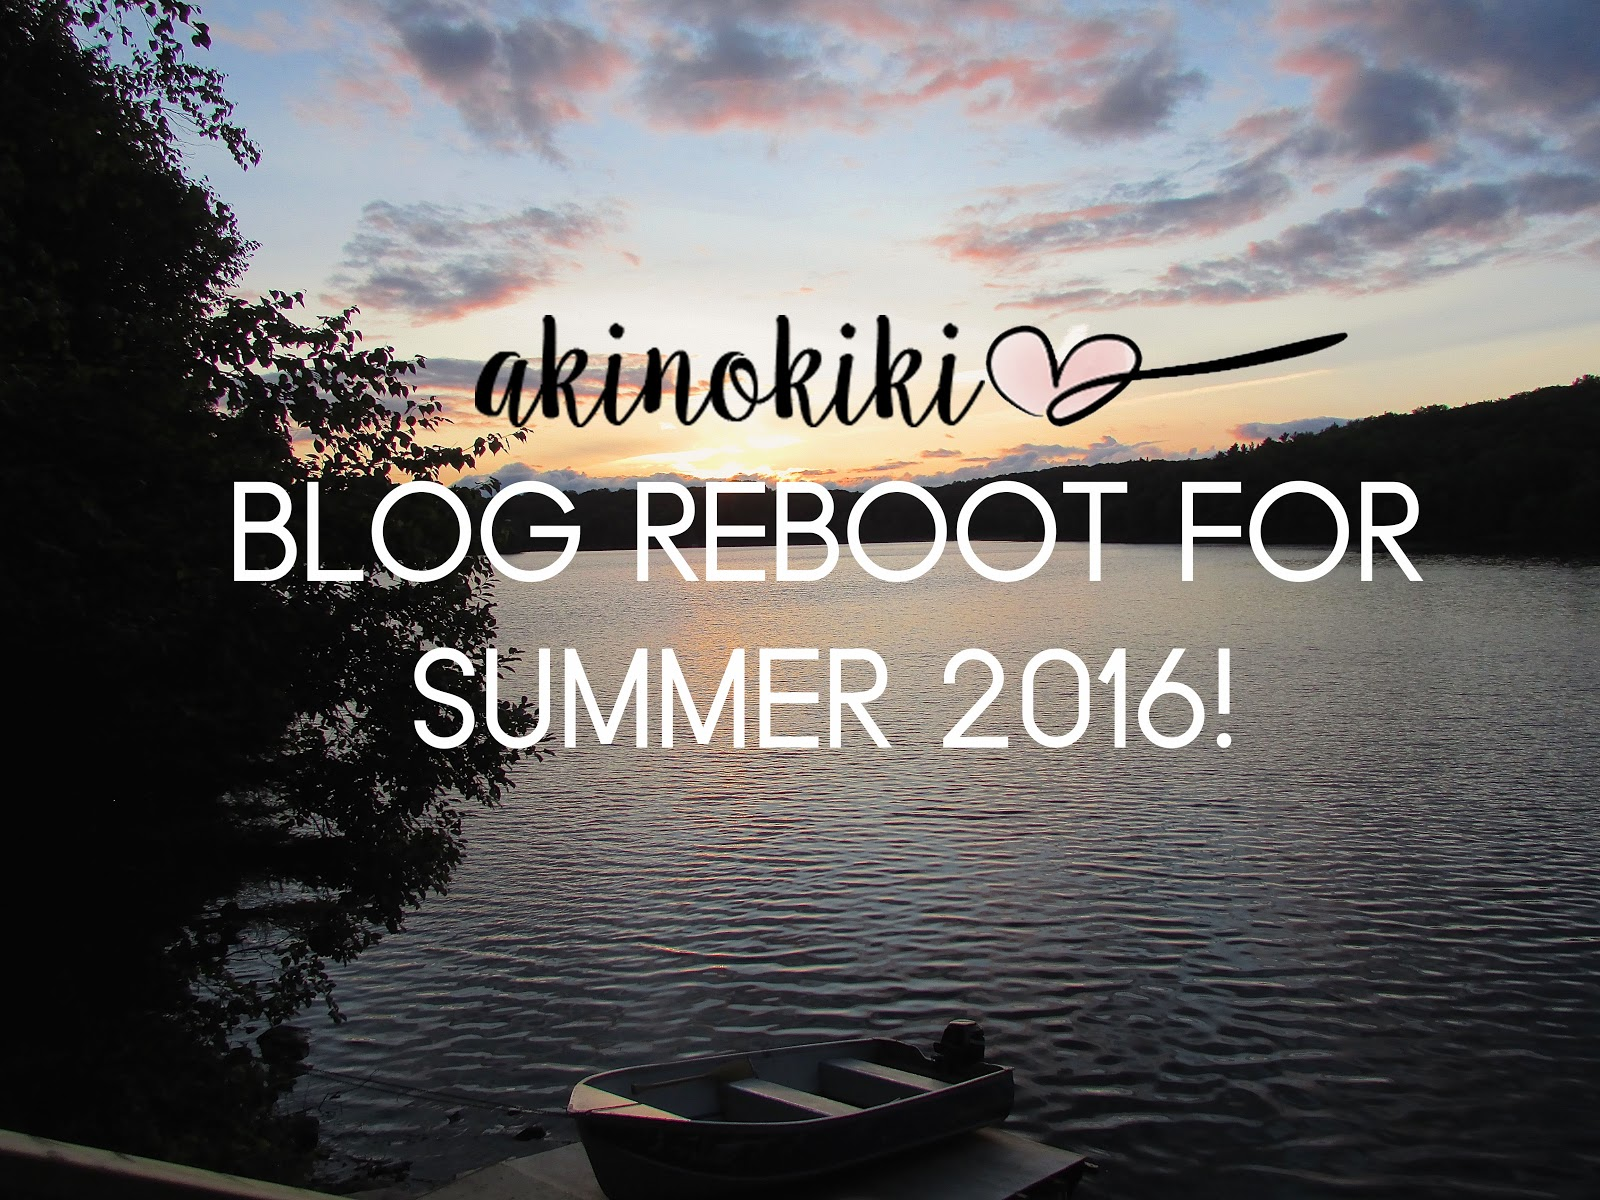 Akinokiki Blog Reboot for Summer 2016 | Akinokiki